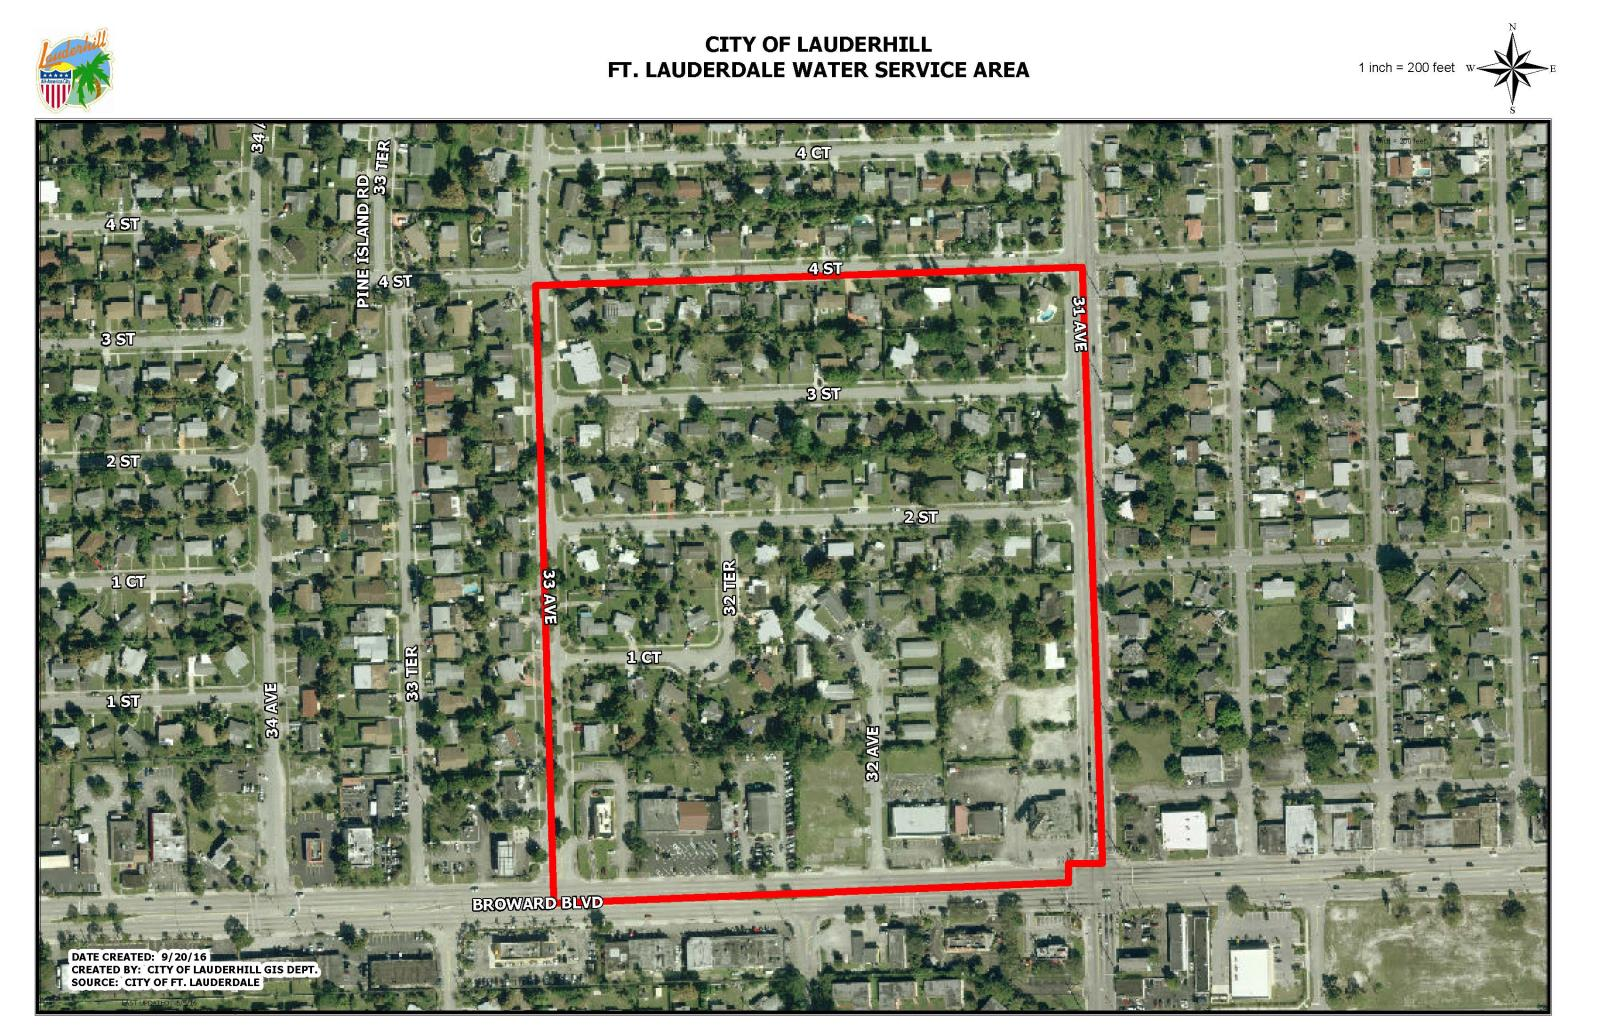 Ft. Lauderdale Water Service Area Map July 19